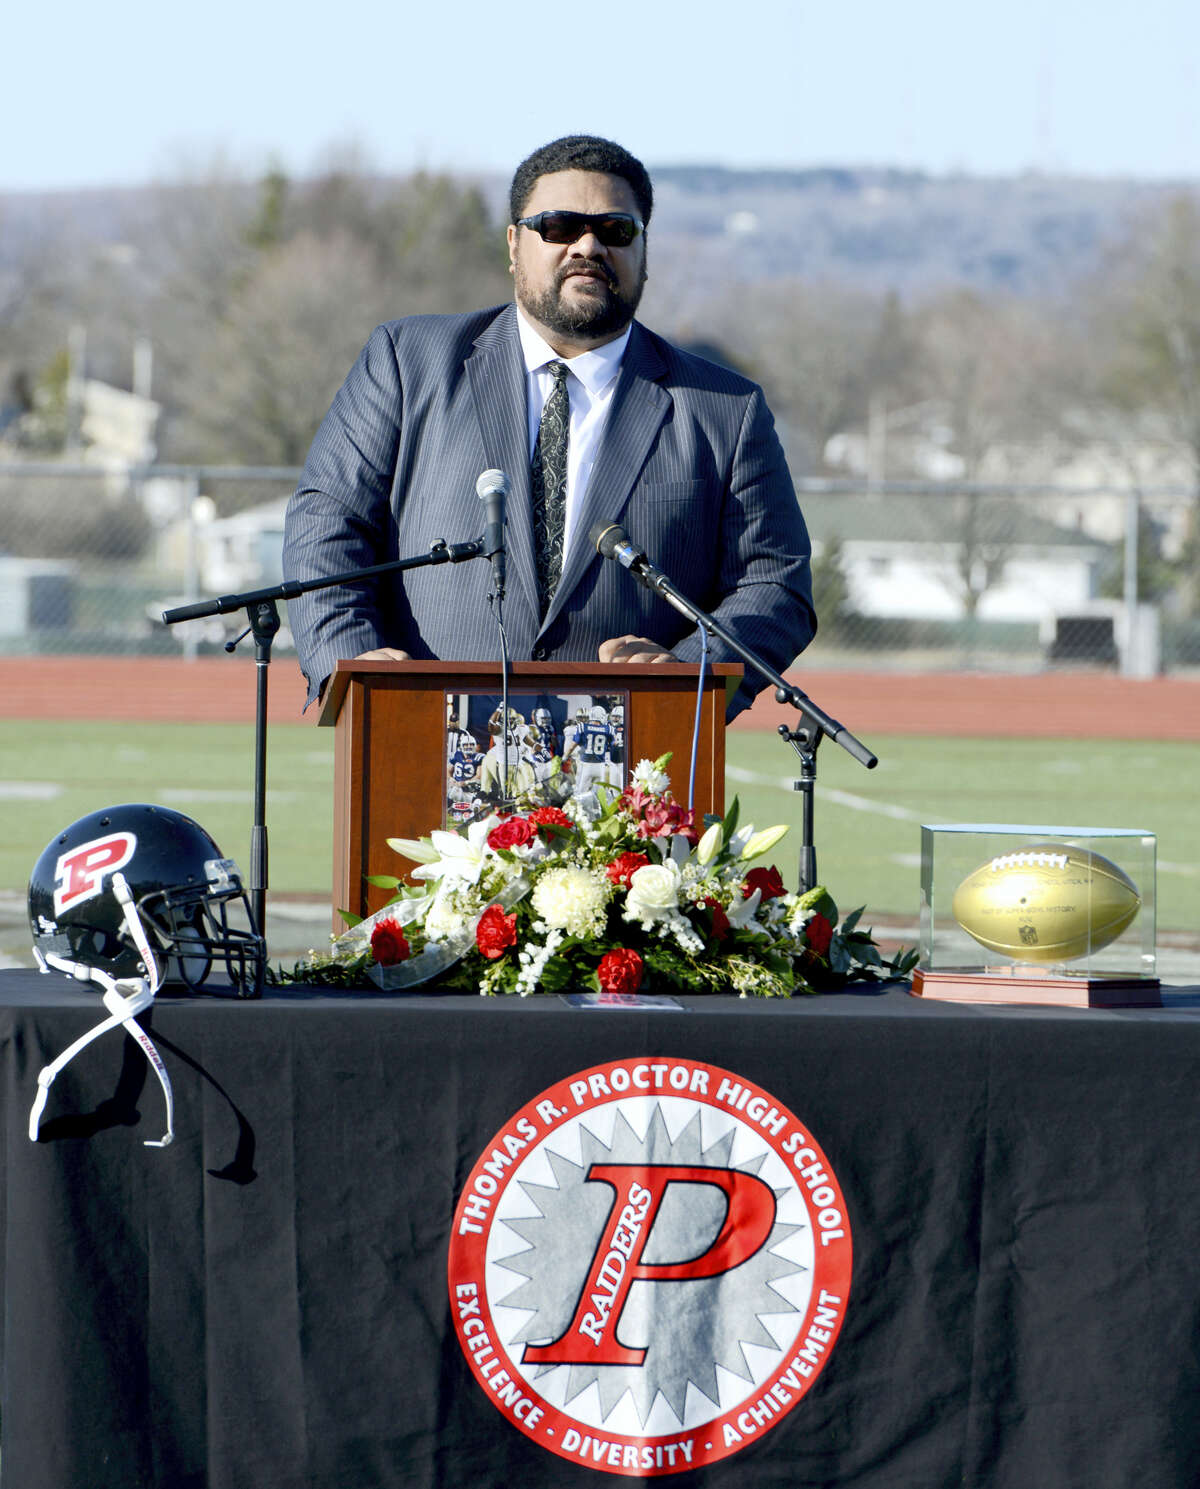 Penny Semaia, a friend and former high school football teammate of Will Smith, speaks during a ceremony to honor the life and legacy of former New Orleans Saints defensive end Will Smith at the school in Utica, N.Y., Thursday, April 14, 2016. Semaia was a high school football teammate of Smith, who was shot and killed last Saturday. Smith lived in Utica as a child with his grandmother, Nancy Smith, and played football for the high school.